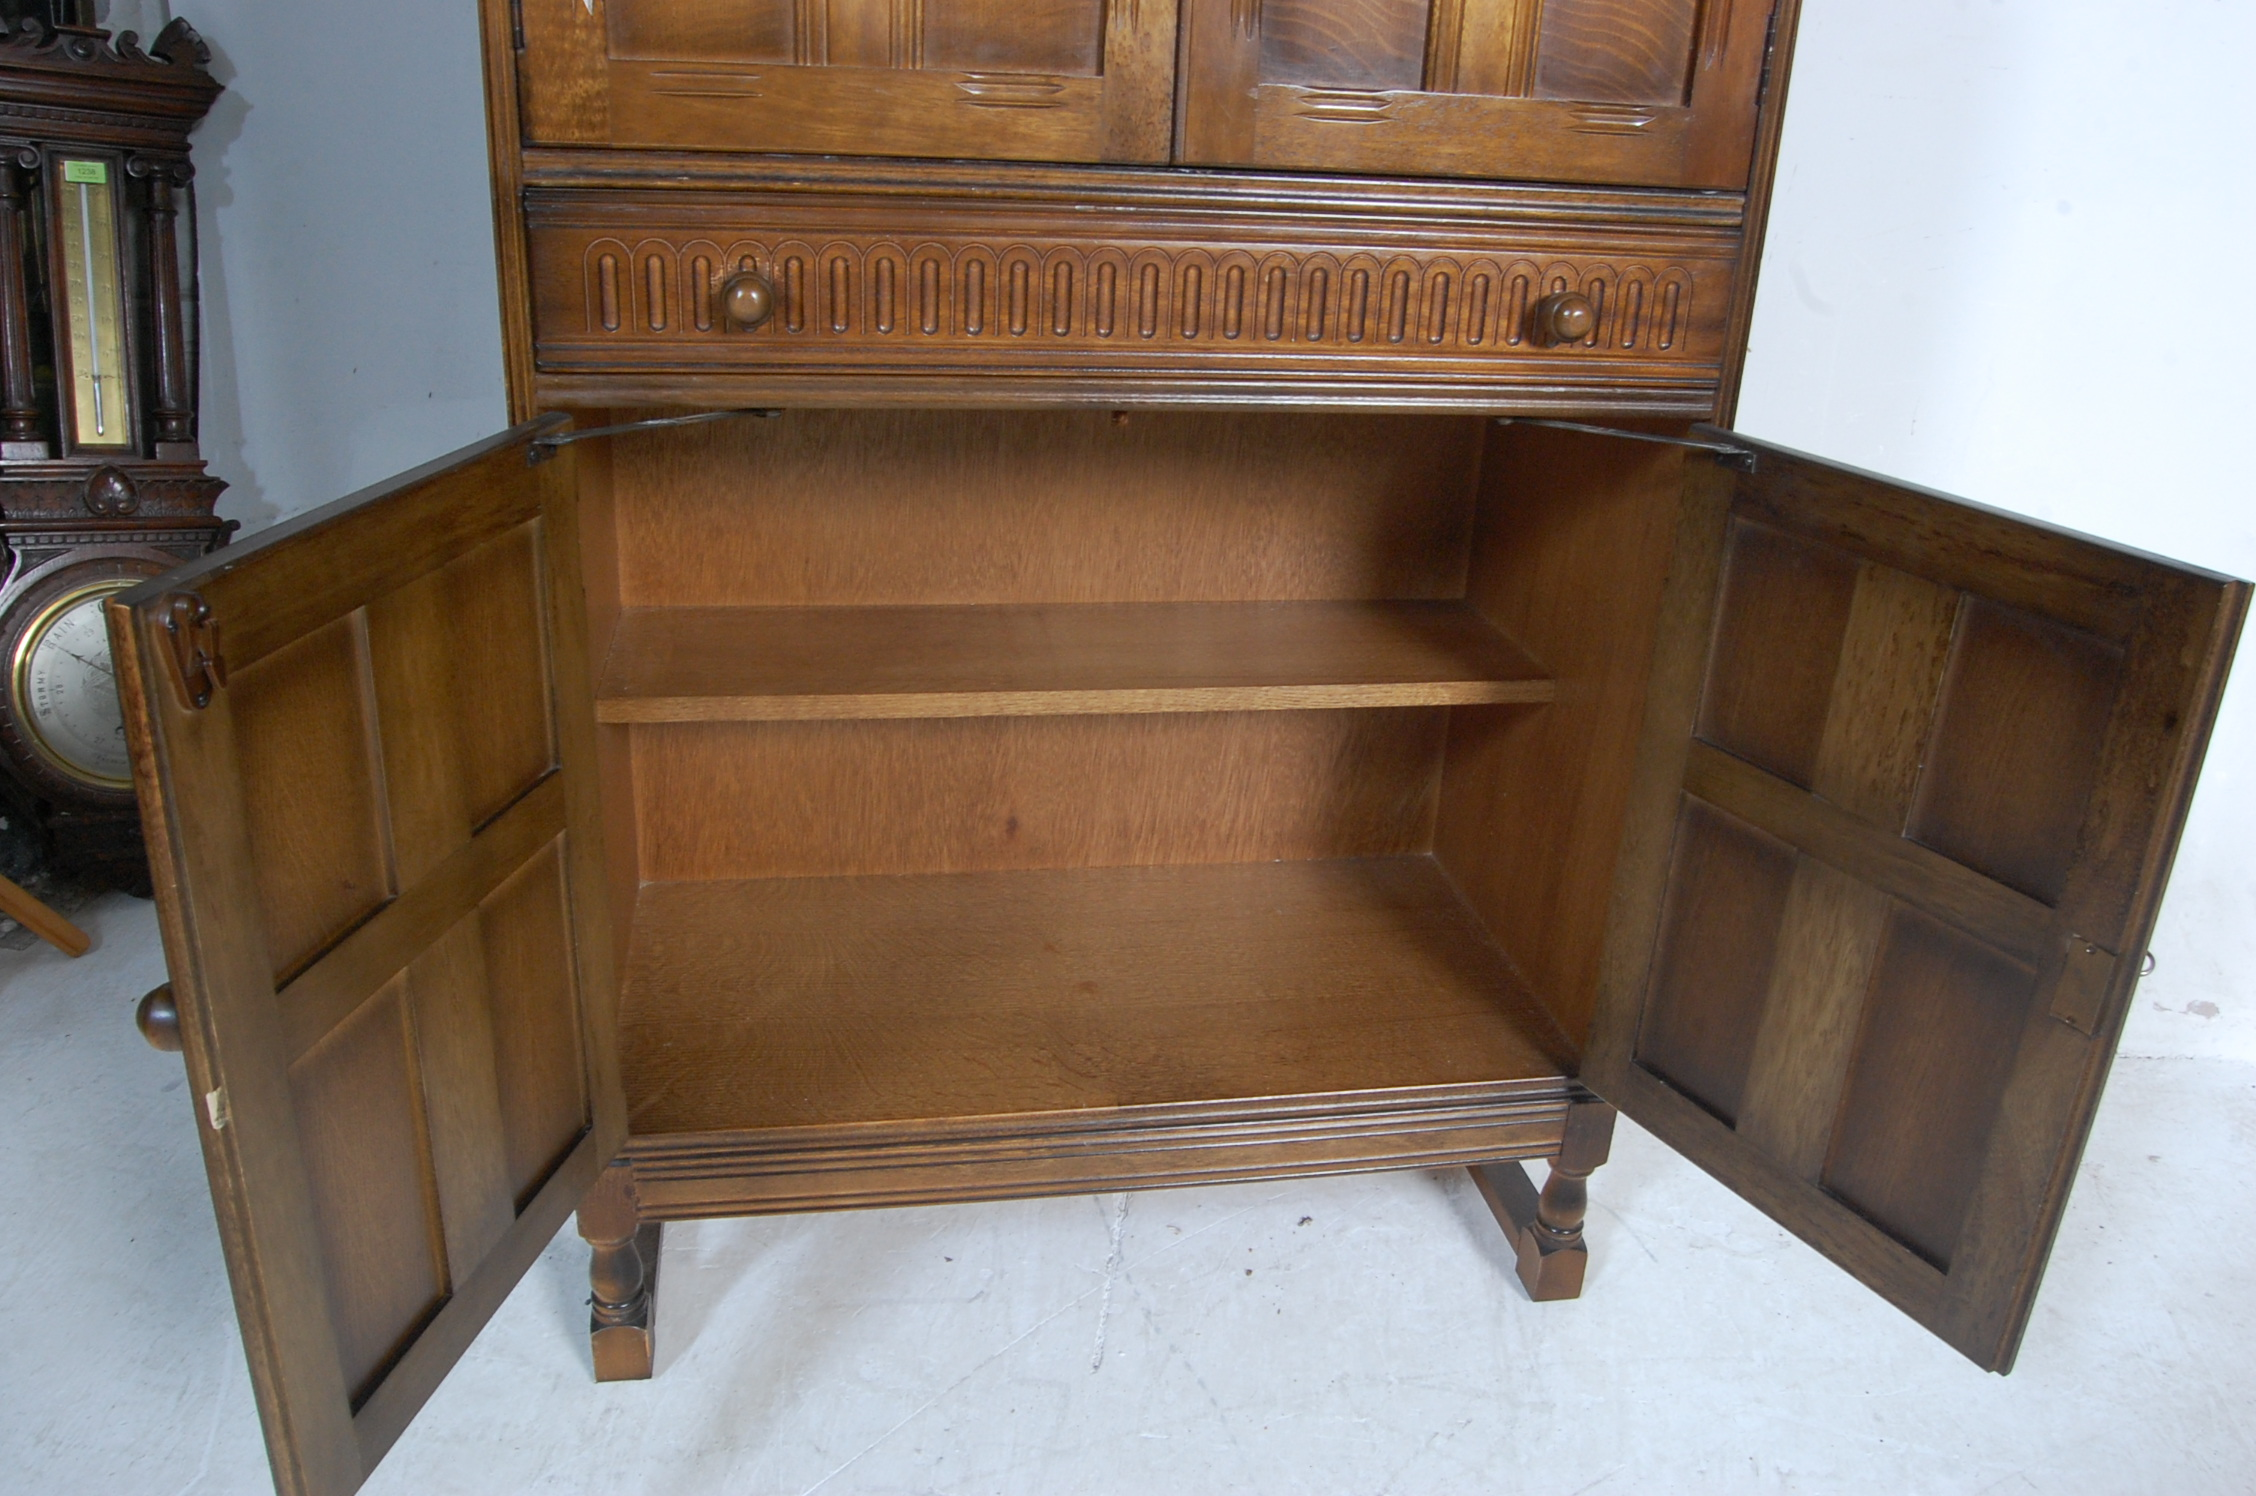 MID CENTURY OAK COCKTAIL CABINET - Image 6 of 6